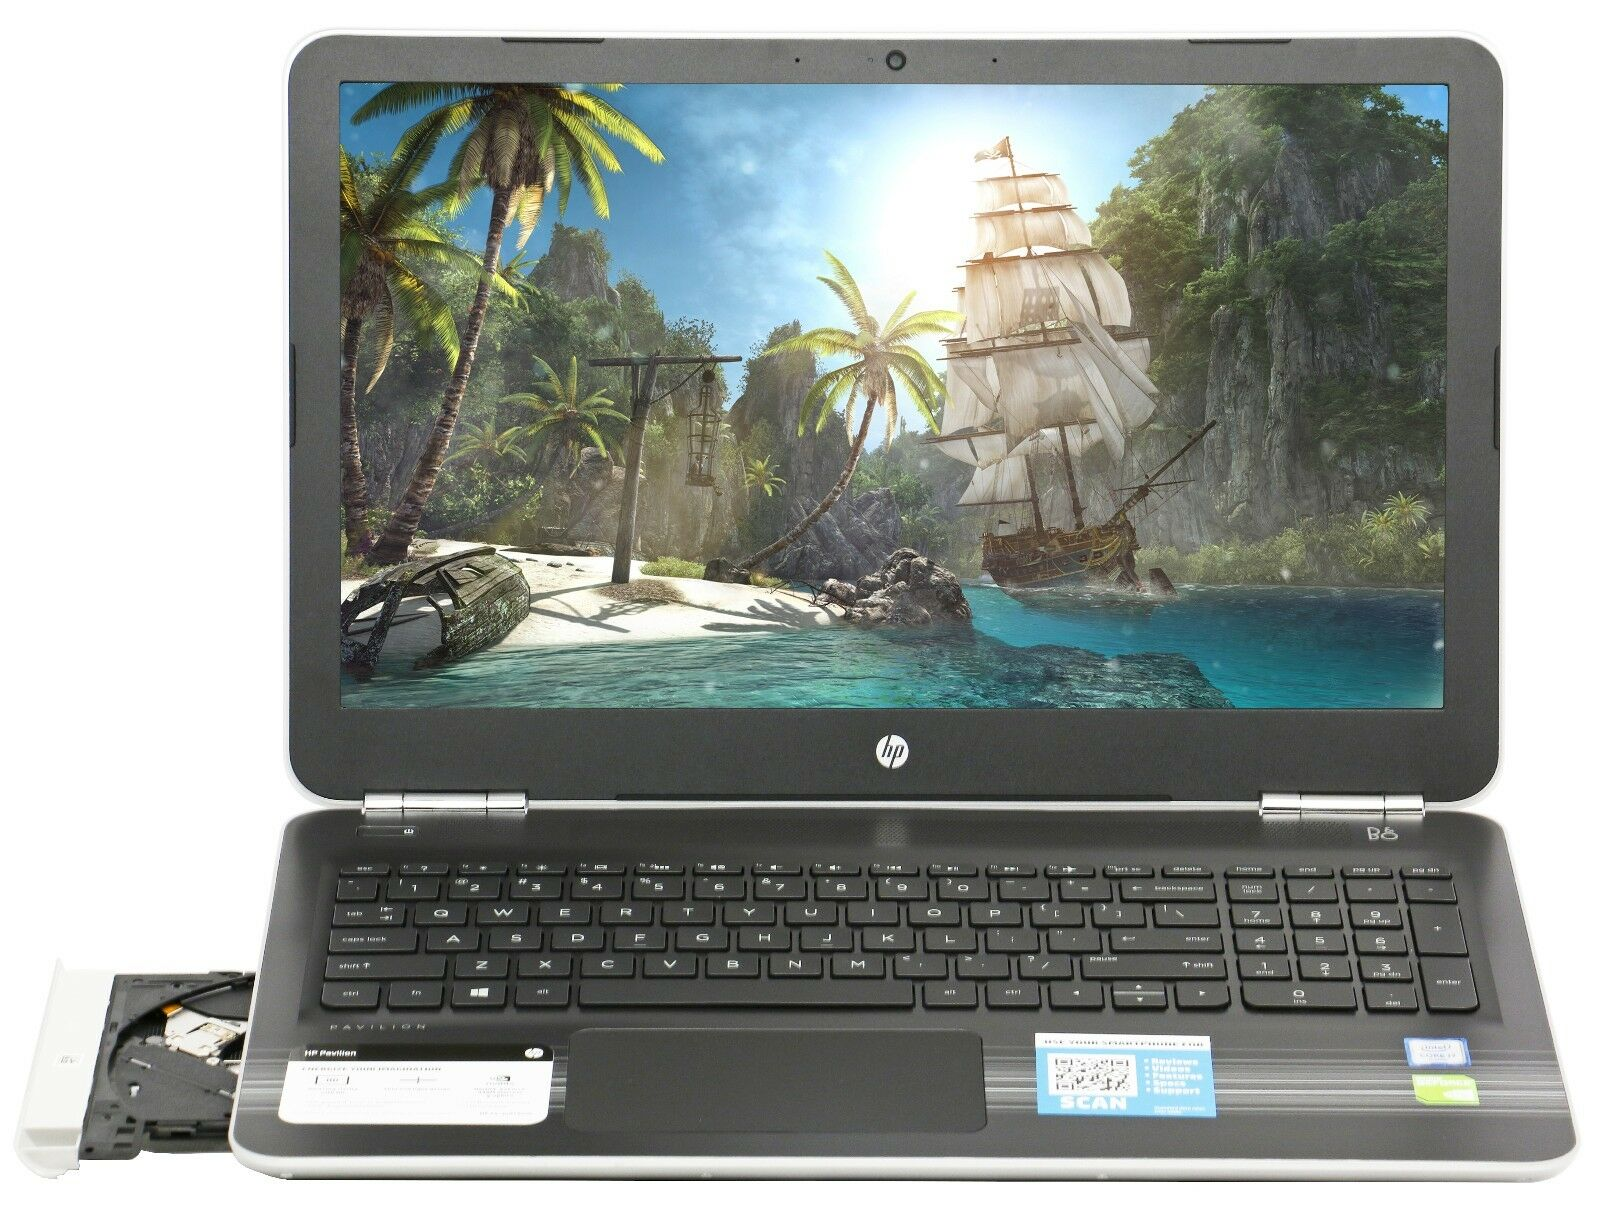 Купить HP - New HP 15.6 NVIDIA 940MX Intel i7-6500U 2.5GHz 1TB 12GB  Win 10 Gaming Laptop